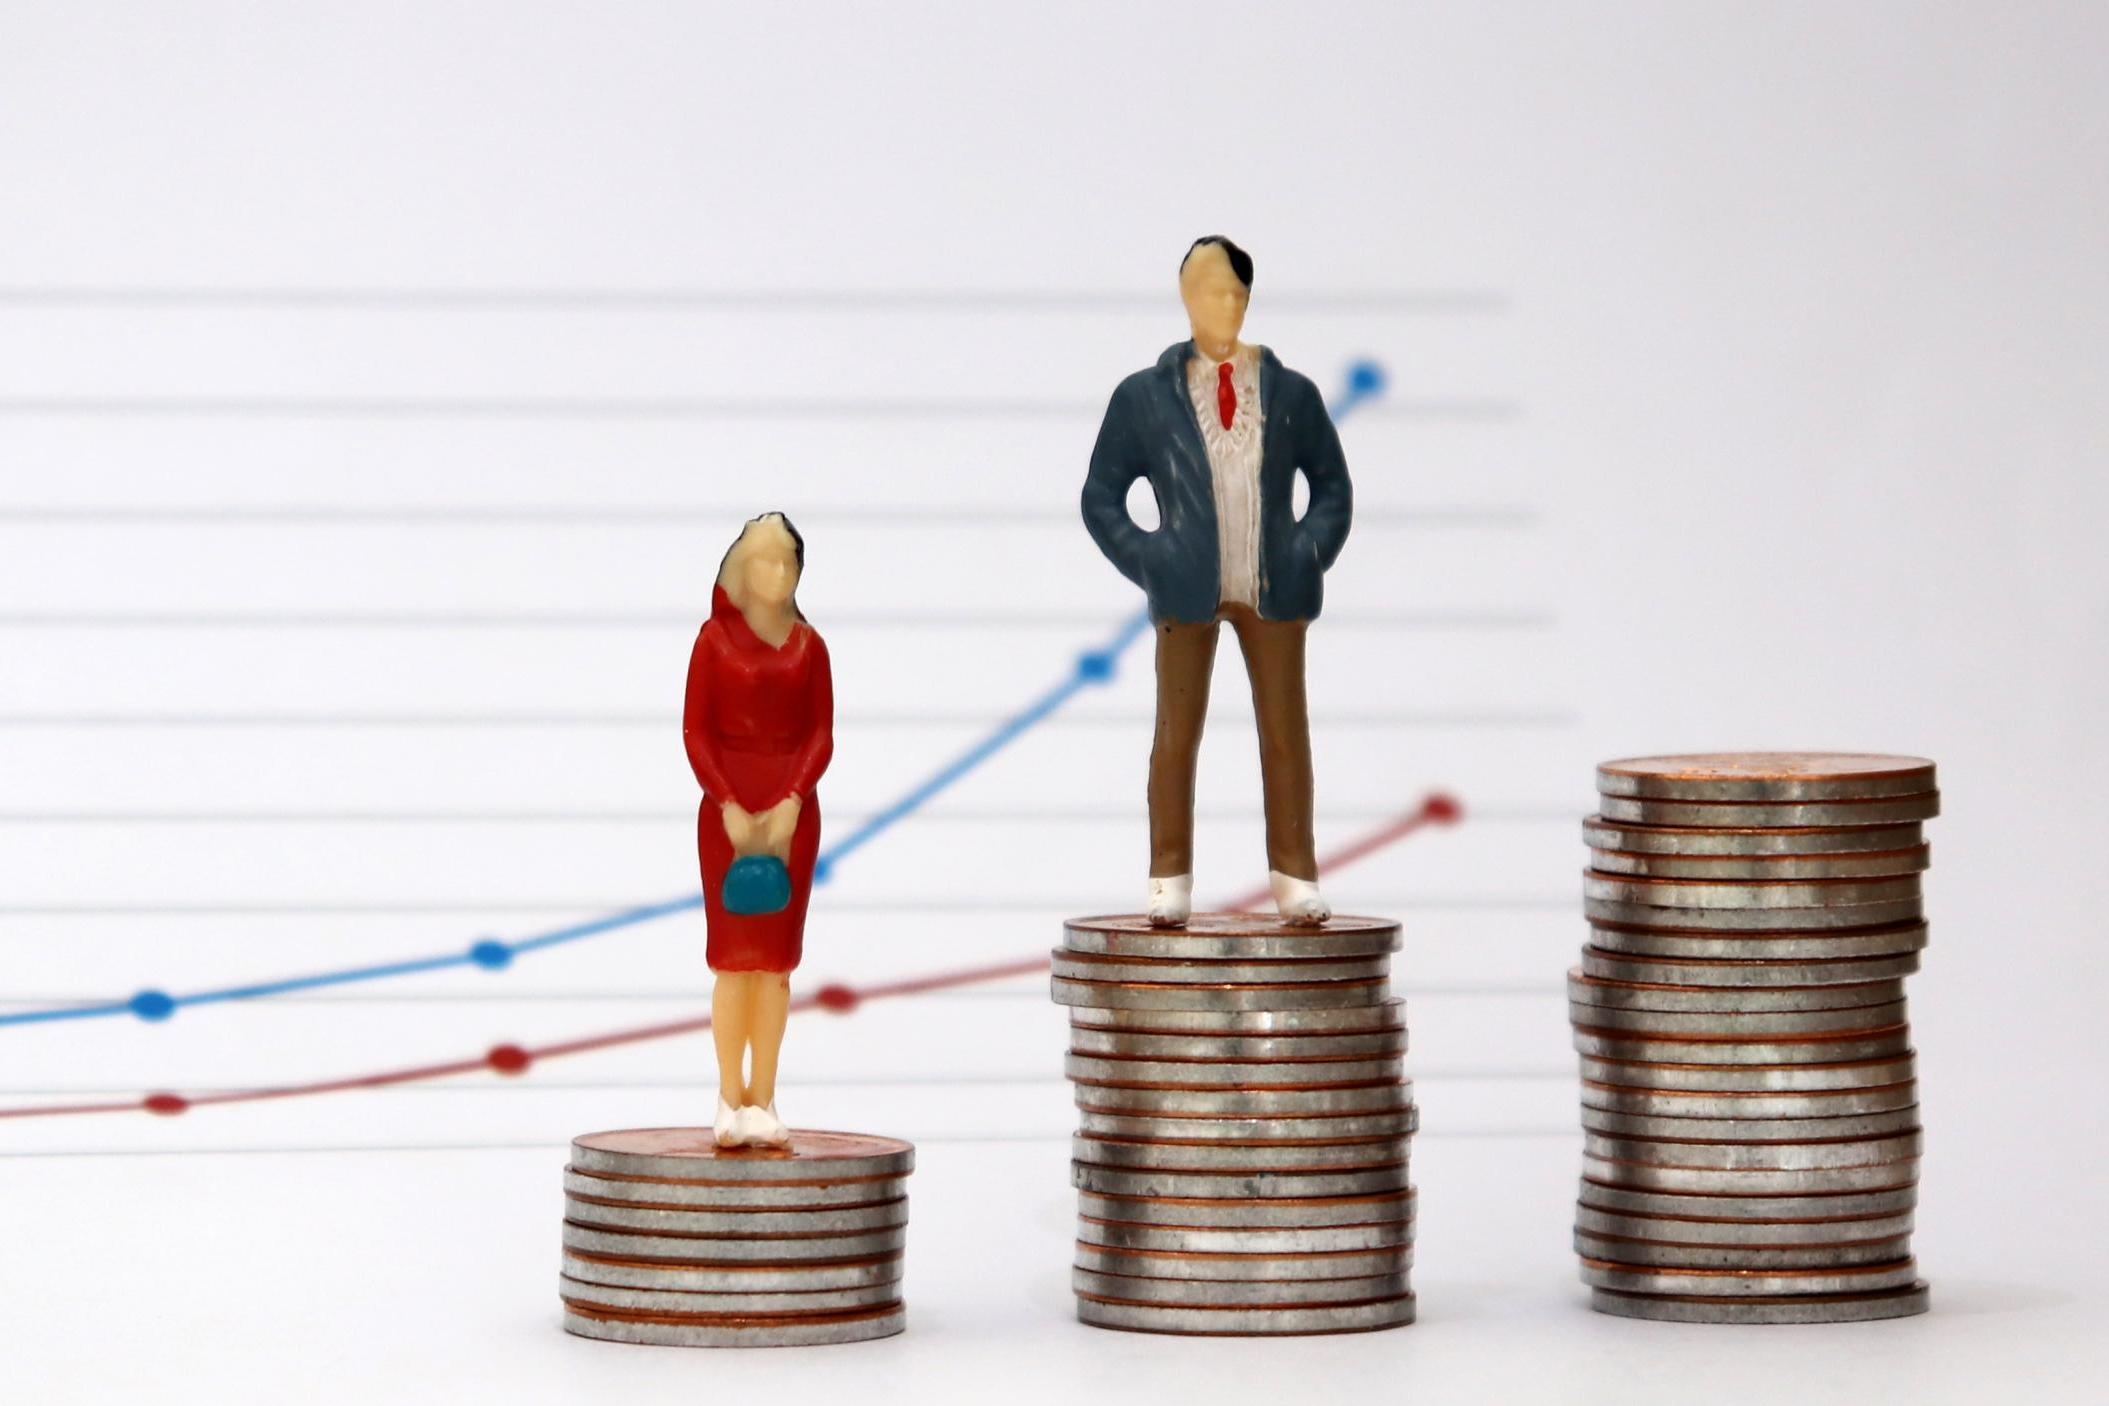 Equal Pay - latest news, breaking stories and comment - The